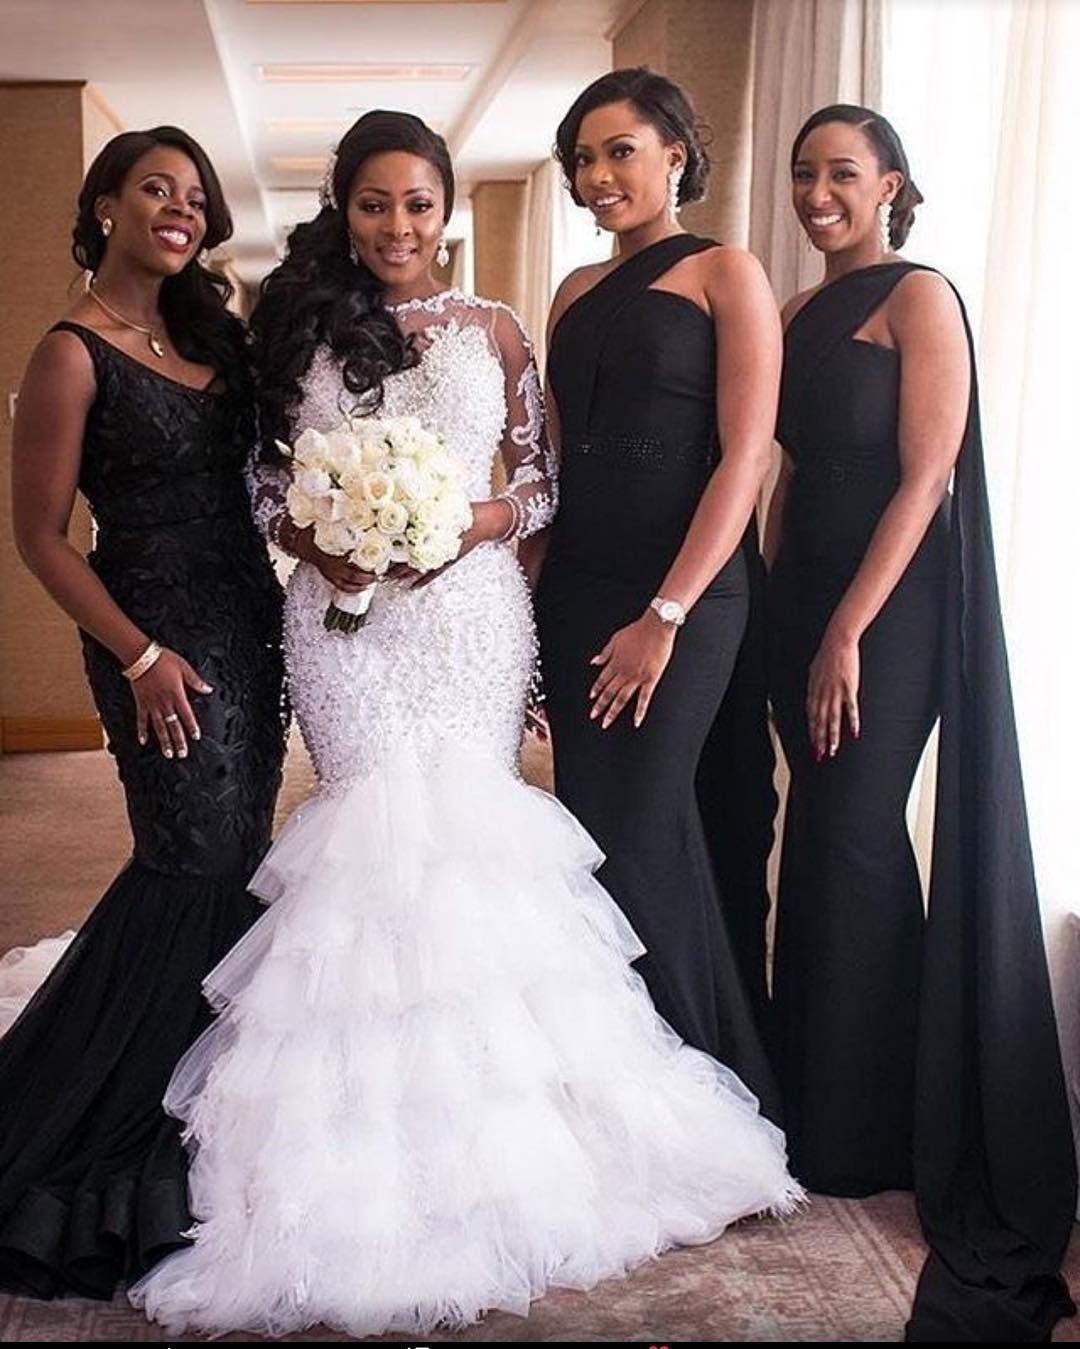 Gert johan coetzee follow us signaturebride on twitter and on gert johan coetzee follow us signaturebride on twitter and on facebook signature bride black bridesmaid ombrellifo Image collections